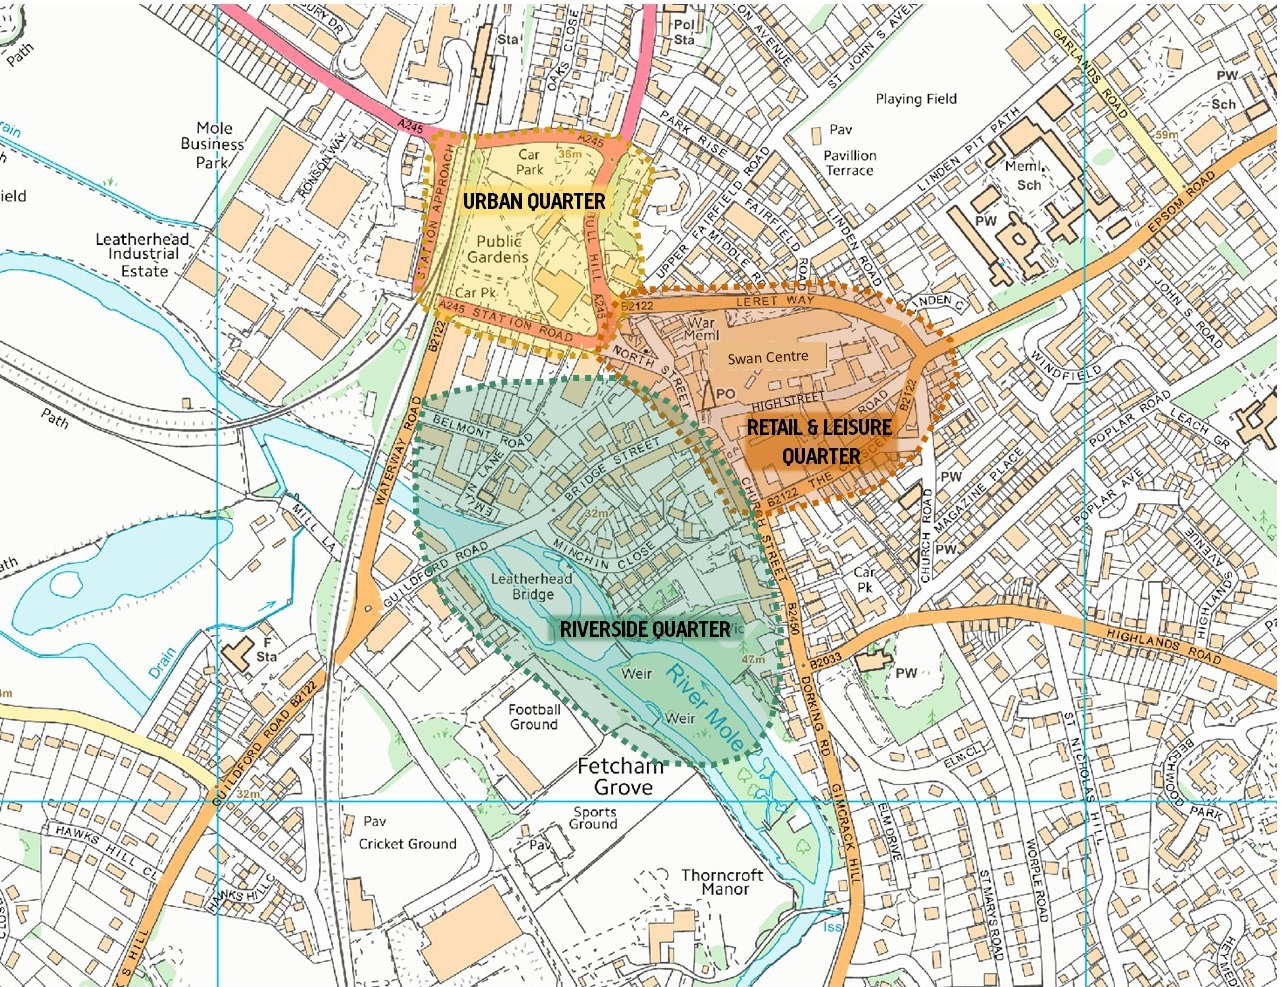 Interactive image showing map of Leatherhead with the key quarters highlighted.